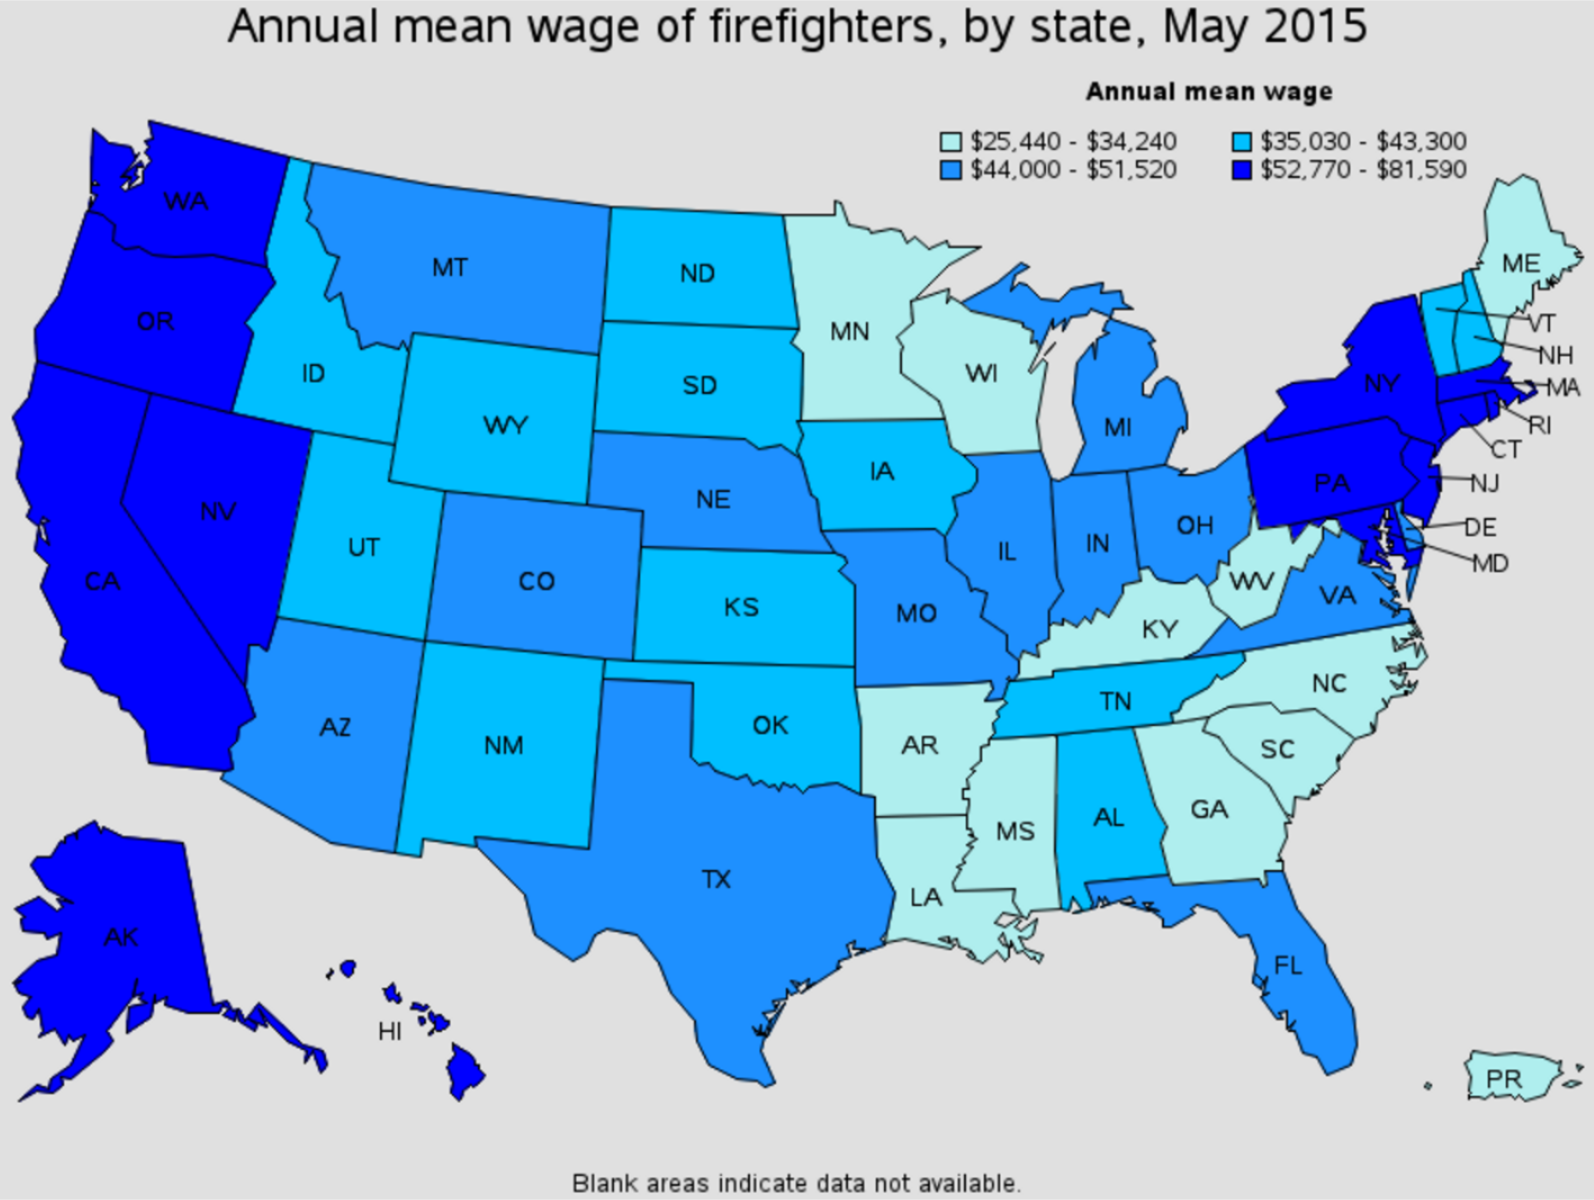 firefighter average salary by state Everett Washington